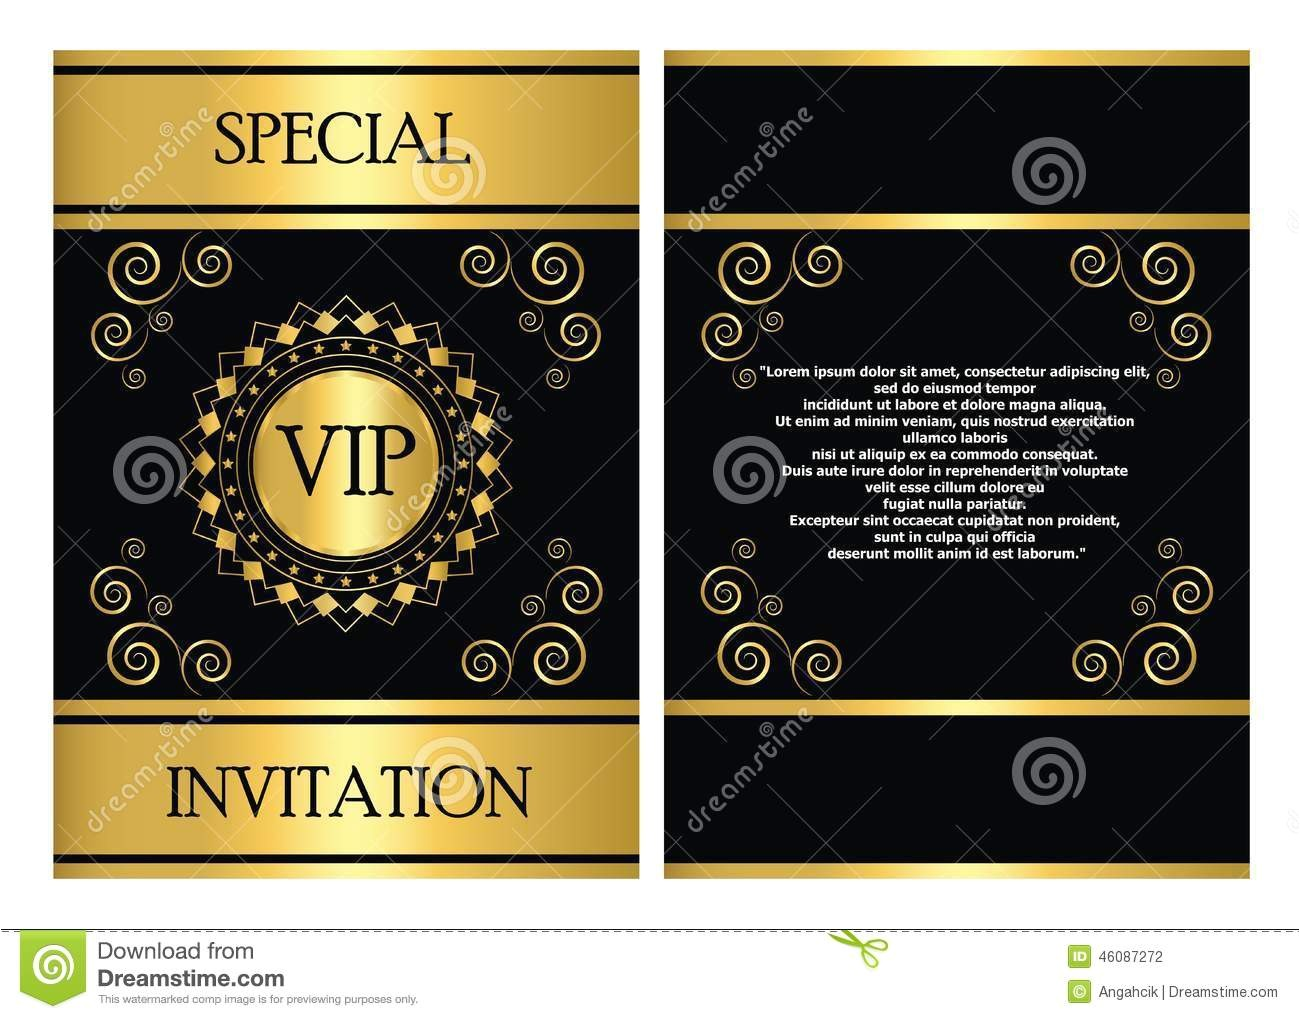 stock illustration vip invitation card template golden can be used business company event party image46087272